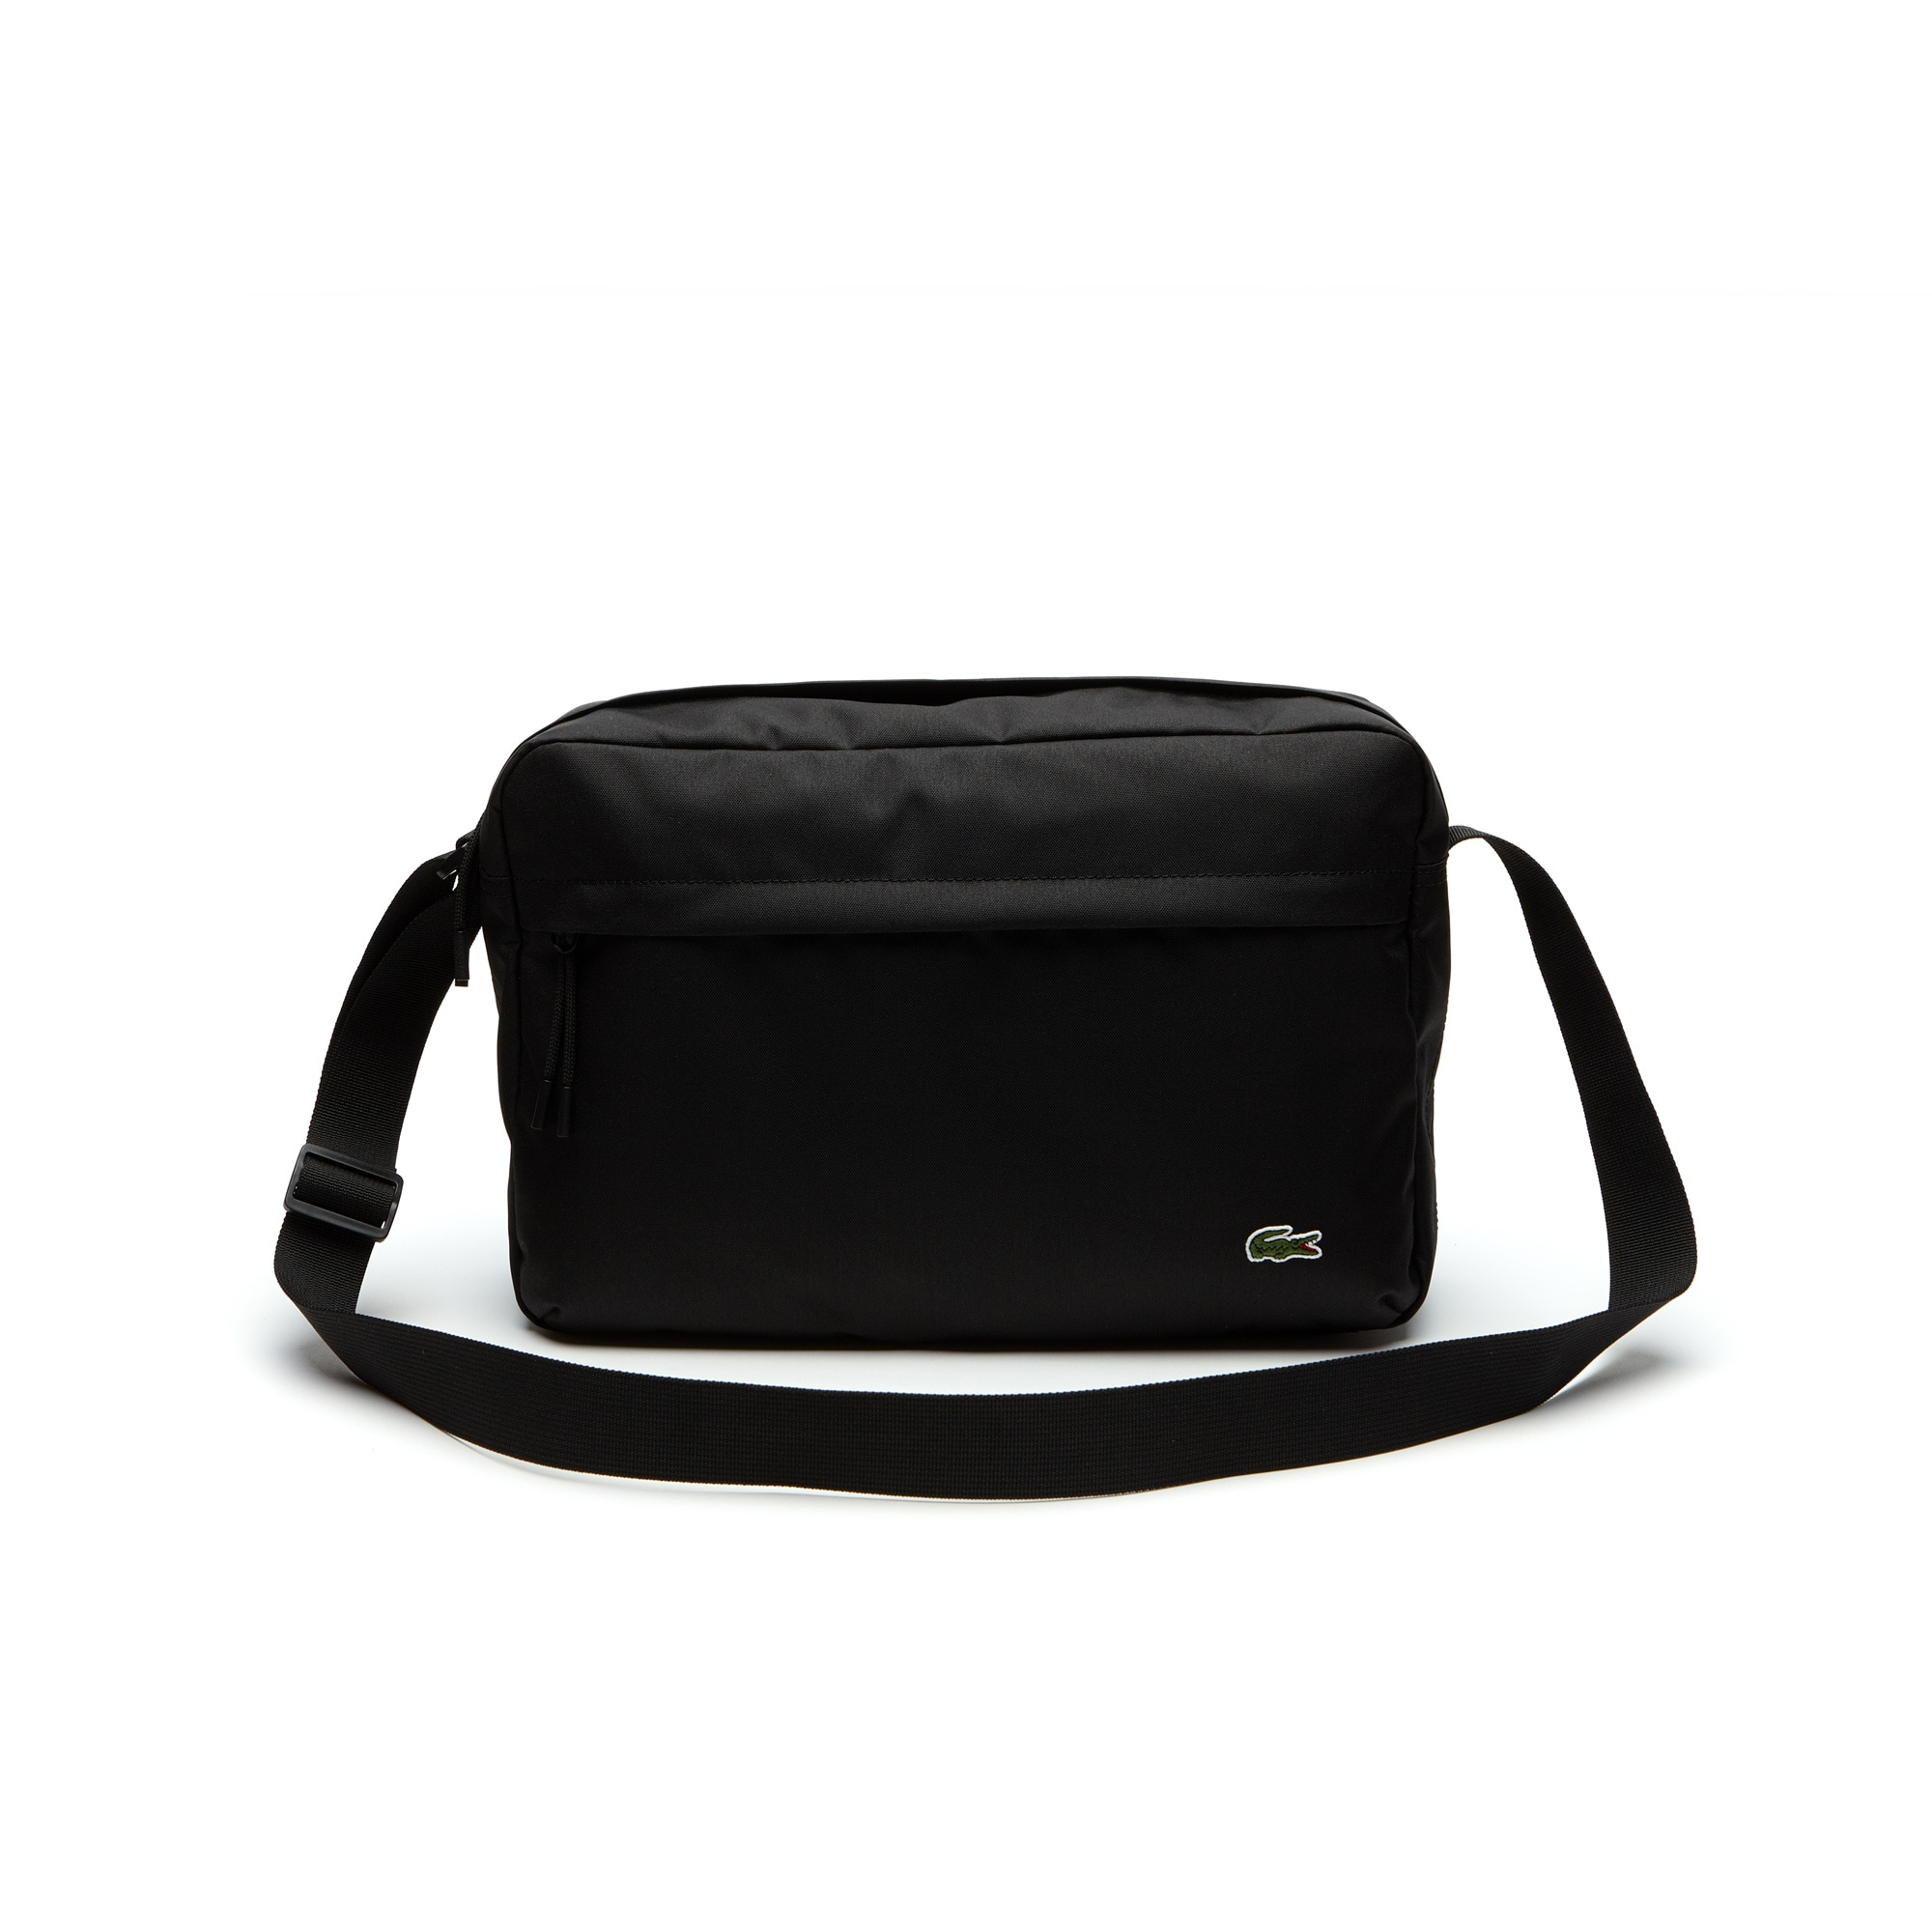 Men's Neocroc Monochrome Airline Bag